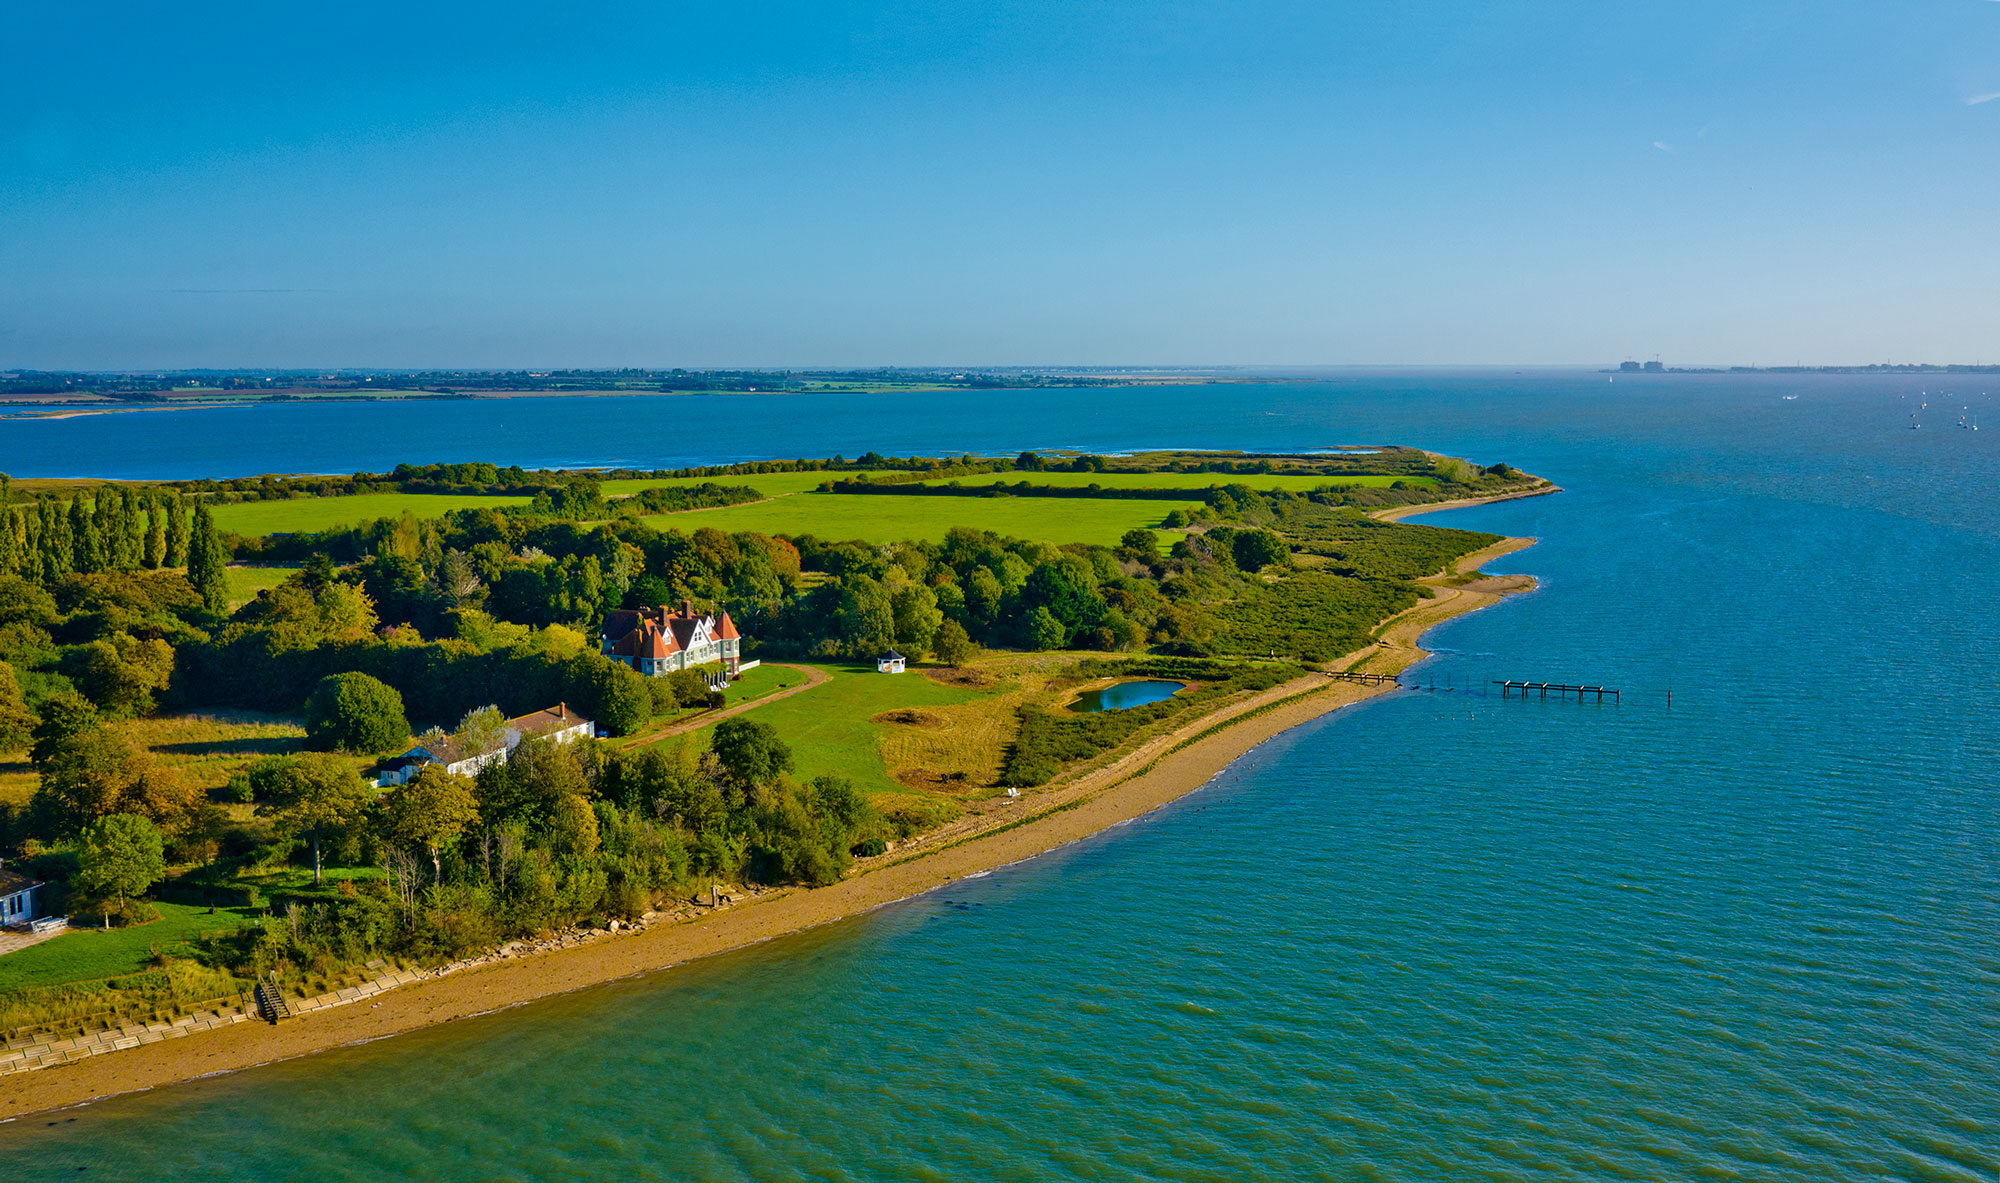 Osea Island Aerial View Of The Island